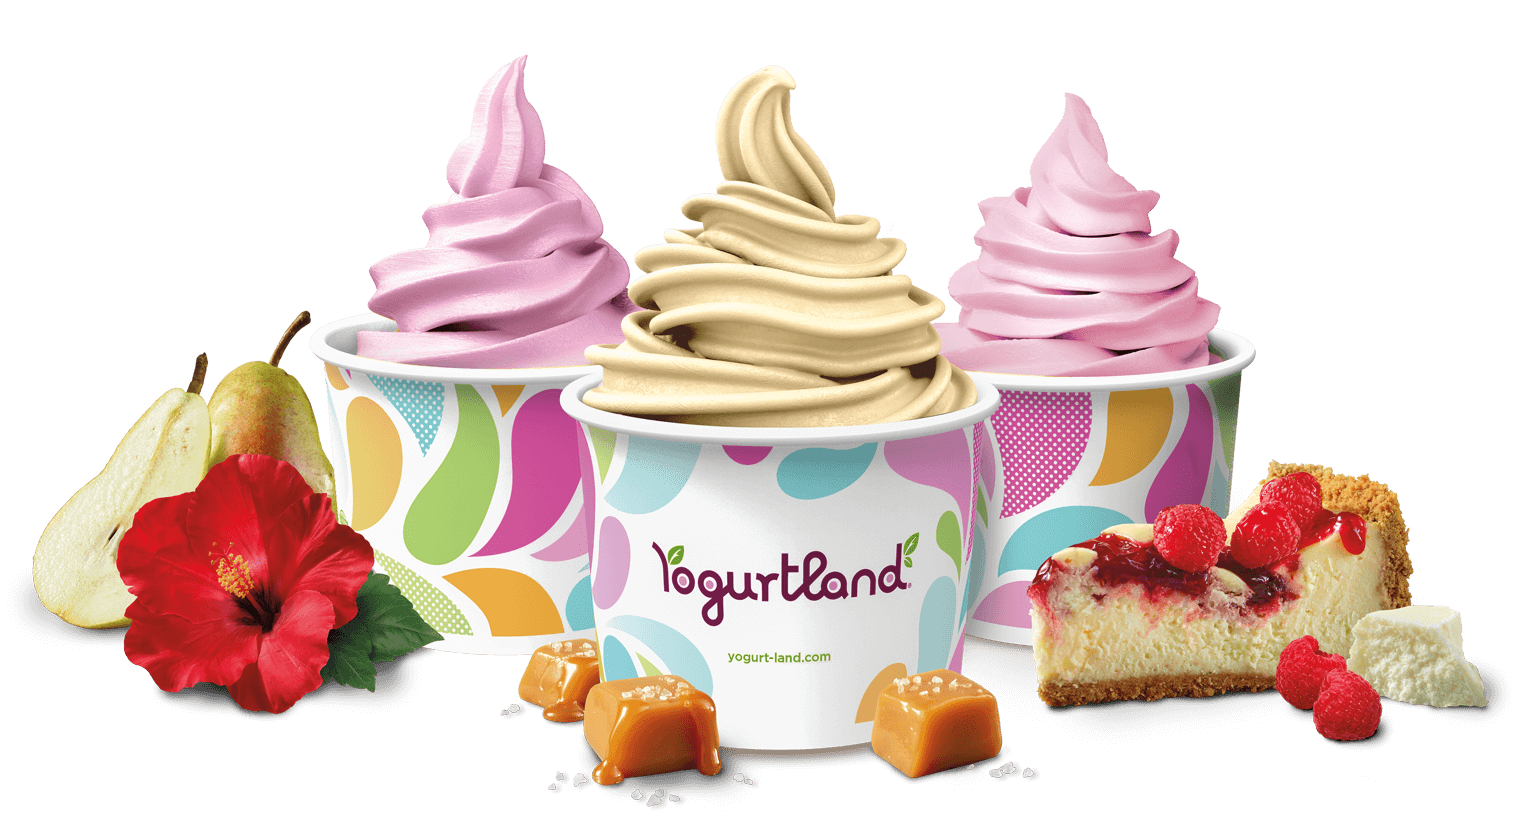 It's spring and our new flavors are blooming: Hibiscus Pear Tart, Sea Salt Caramel Soft Serve and White Chocolate Raspberry Cheesecake